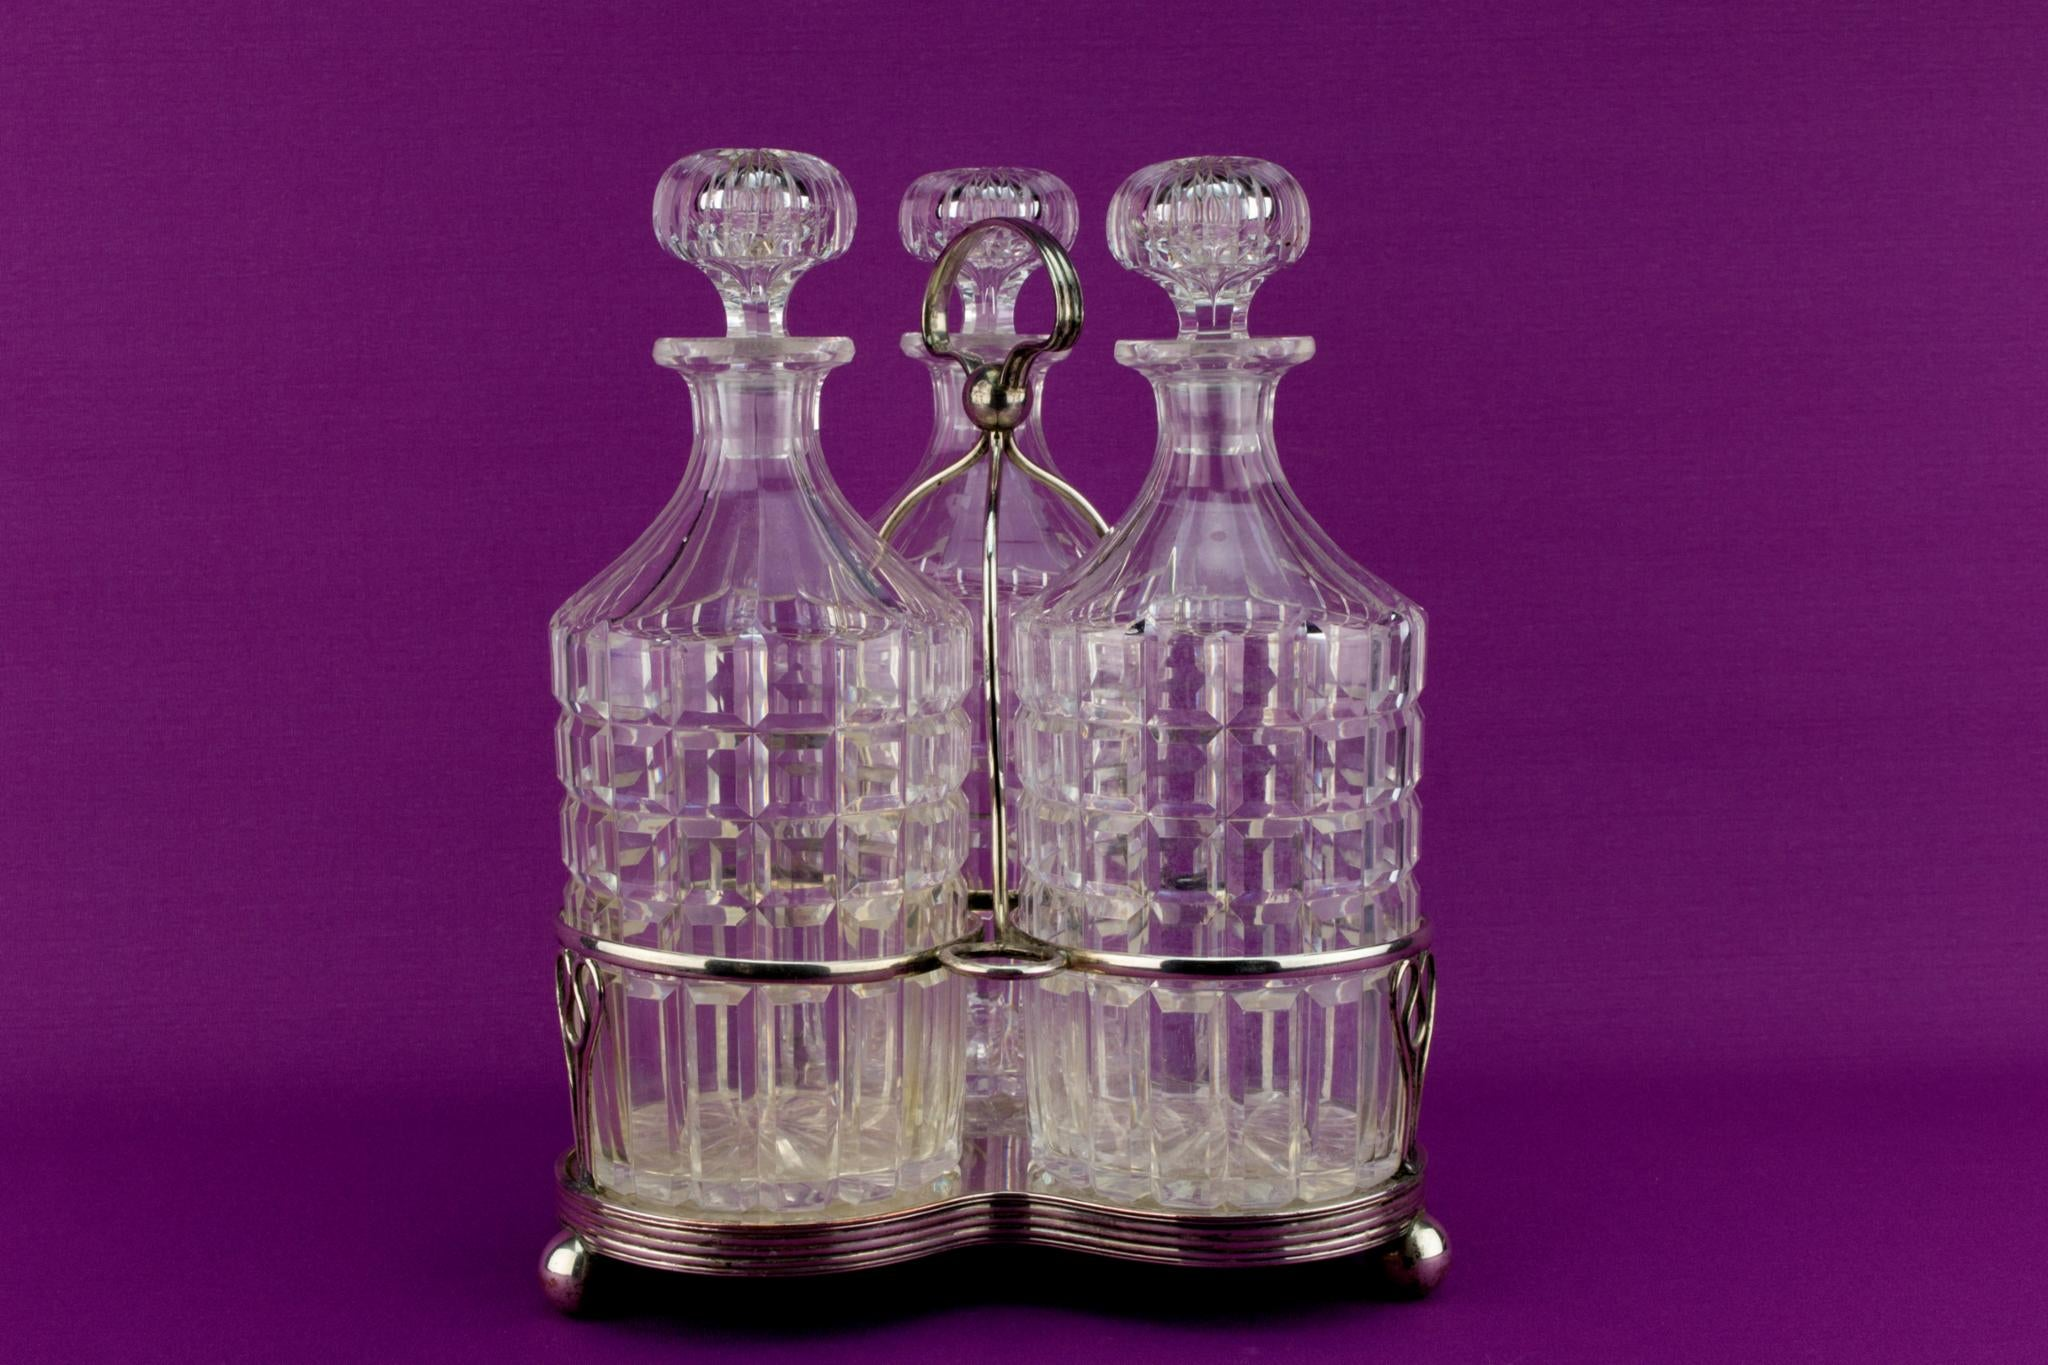 3 Glass decanters on stand, English Early 1900s